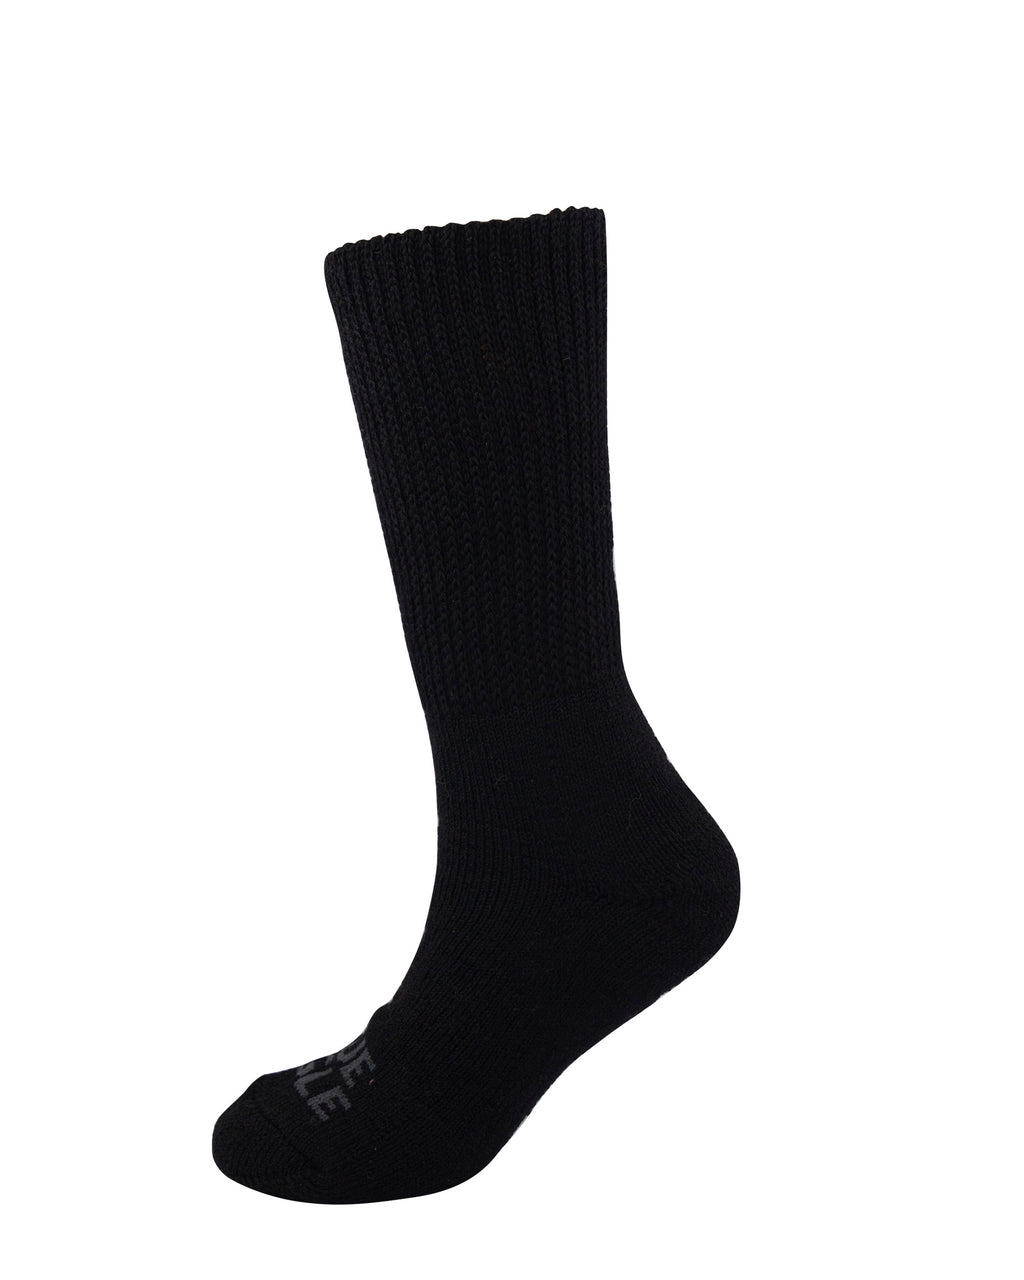 Blue Eagle Health Sock (8675)